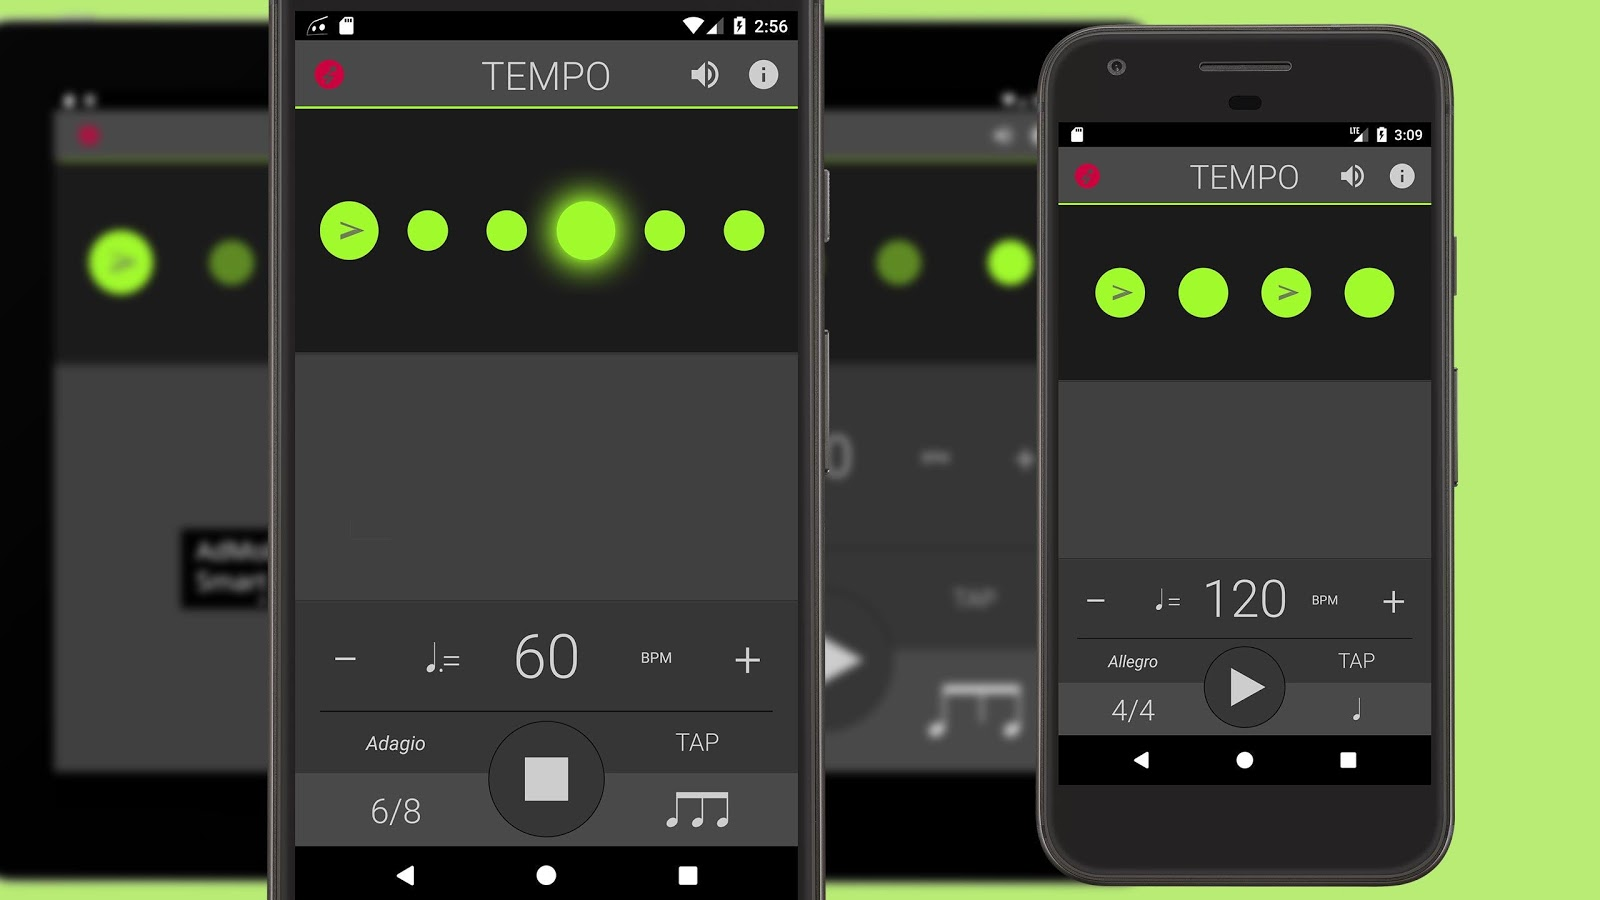 Screenshots of Metronome: Tempo Lite for iPhone